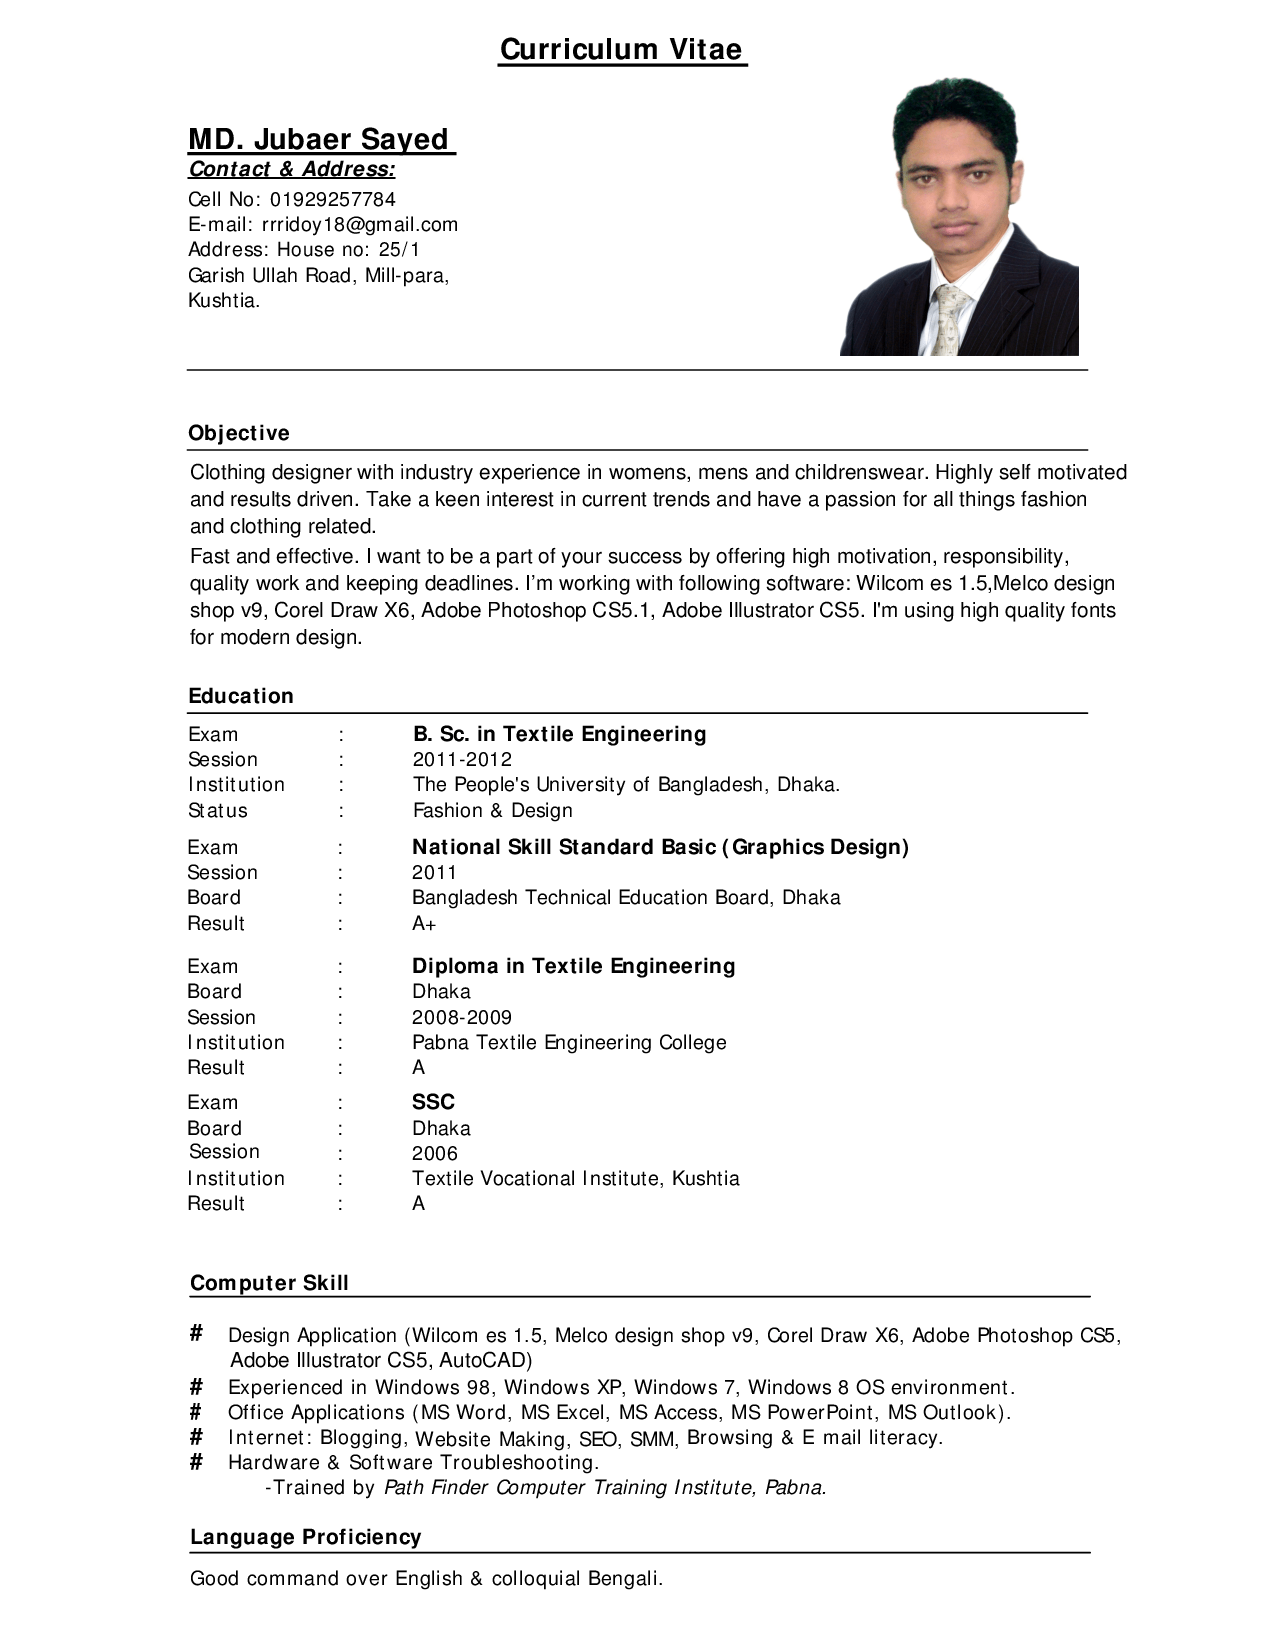 how to write a good curriculum vitae sample cover letter how to write a good curriculum vitae sample how to write a cv or curriculum vitae